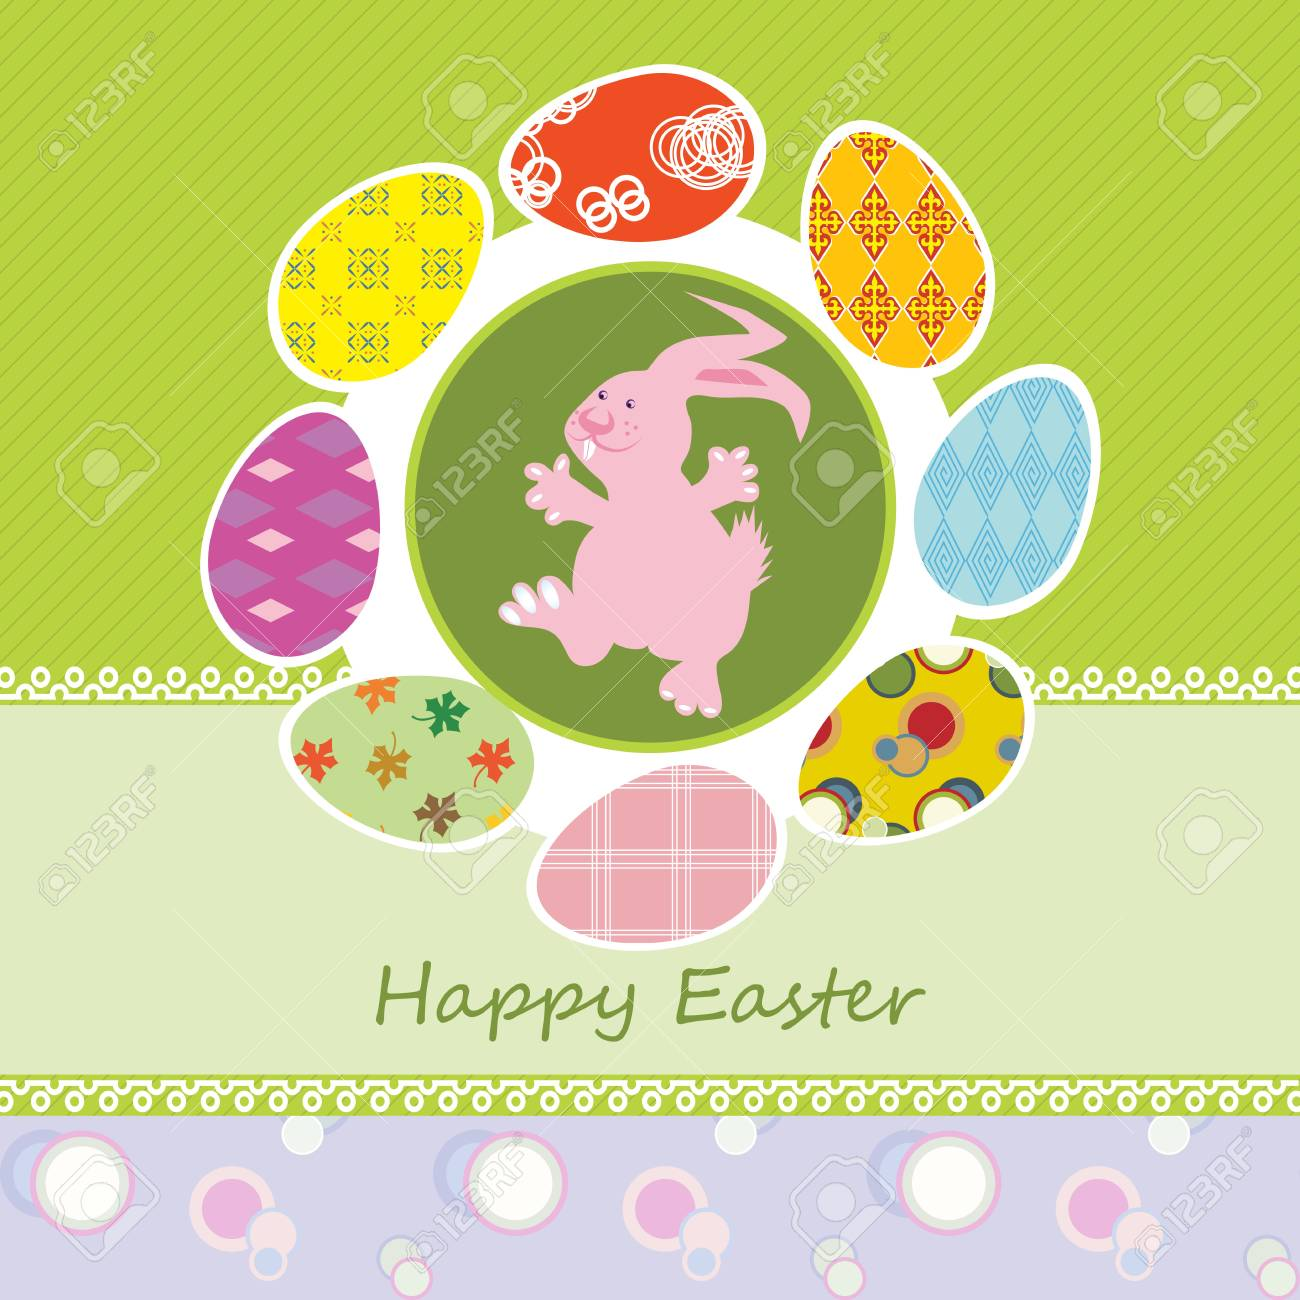 Easter card with happy bunny and decorated eggs Stock Vector - 14234836